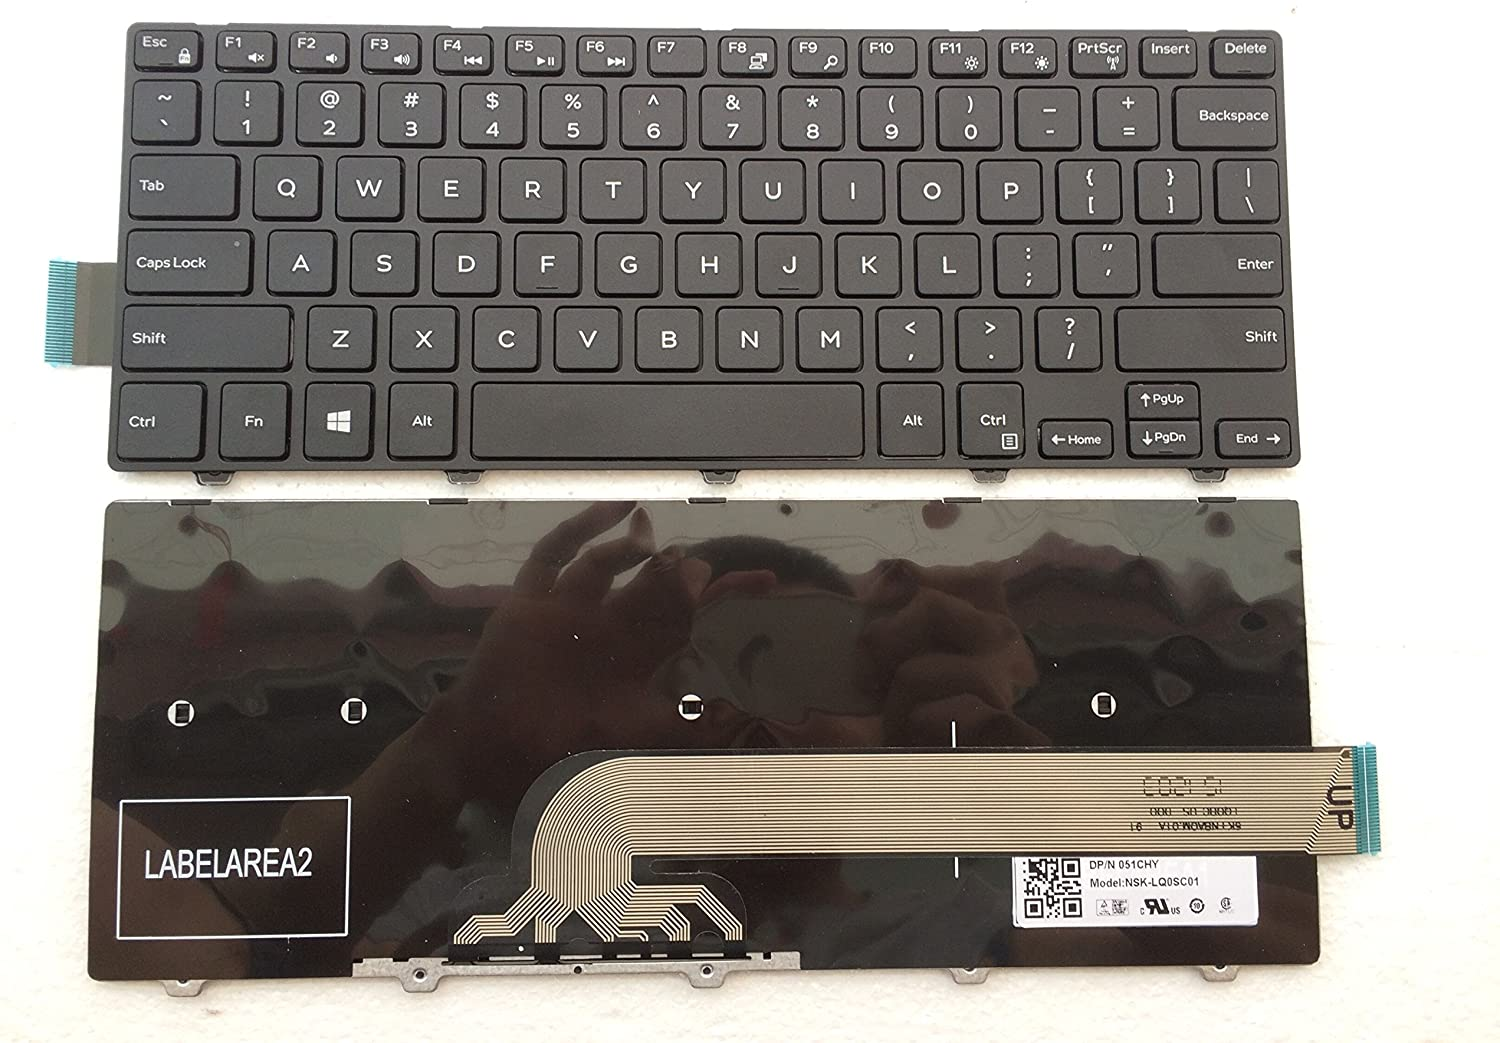 New Laptop Replacement Keyboard for Dell Inspiron 14 3000 14-3000 3441 3442 3443 3445 3446 3447 3449 3451 3458 3459 0FDKH0 NSK-LQ0SC PK1313PA109 Black Frame 14-3000